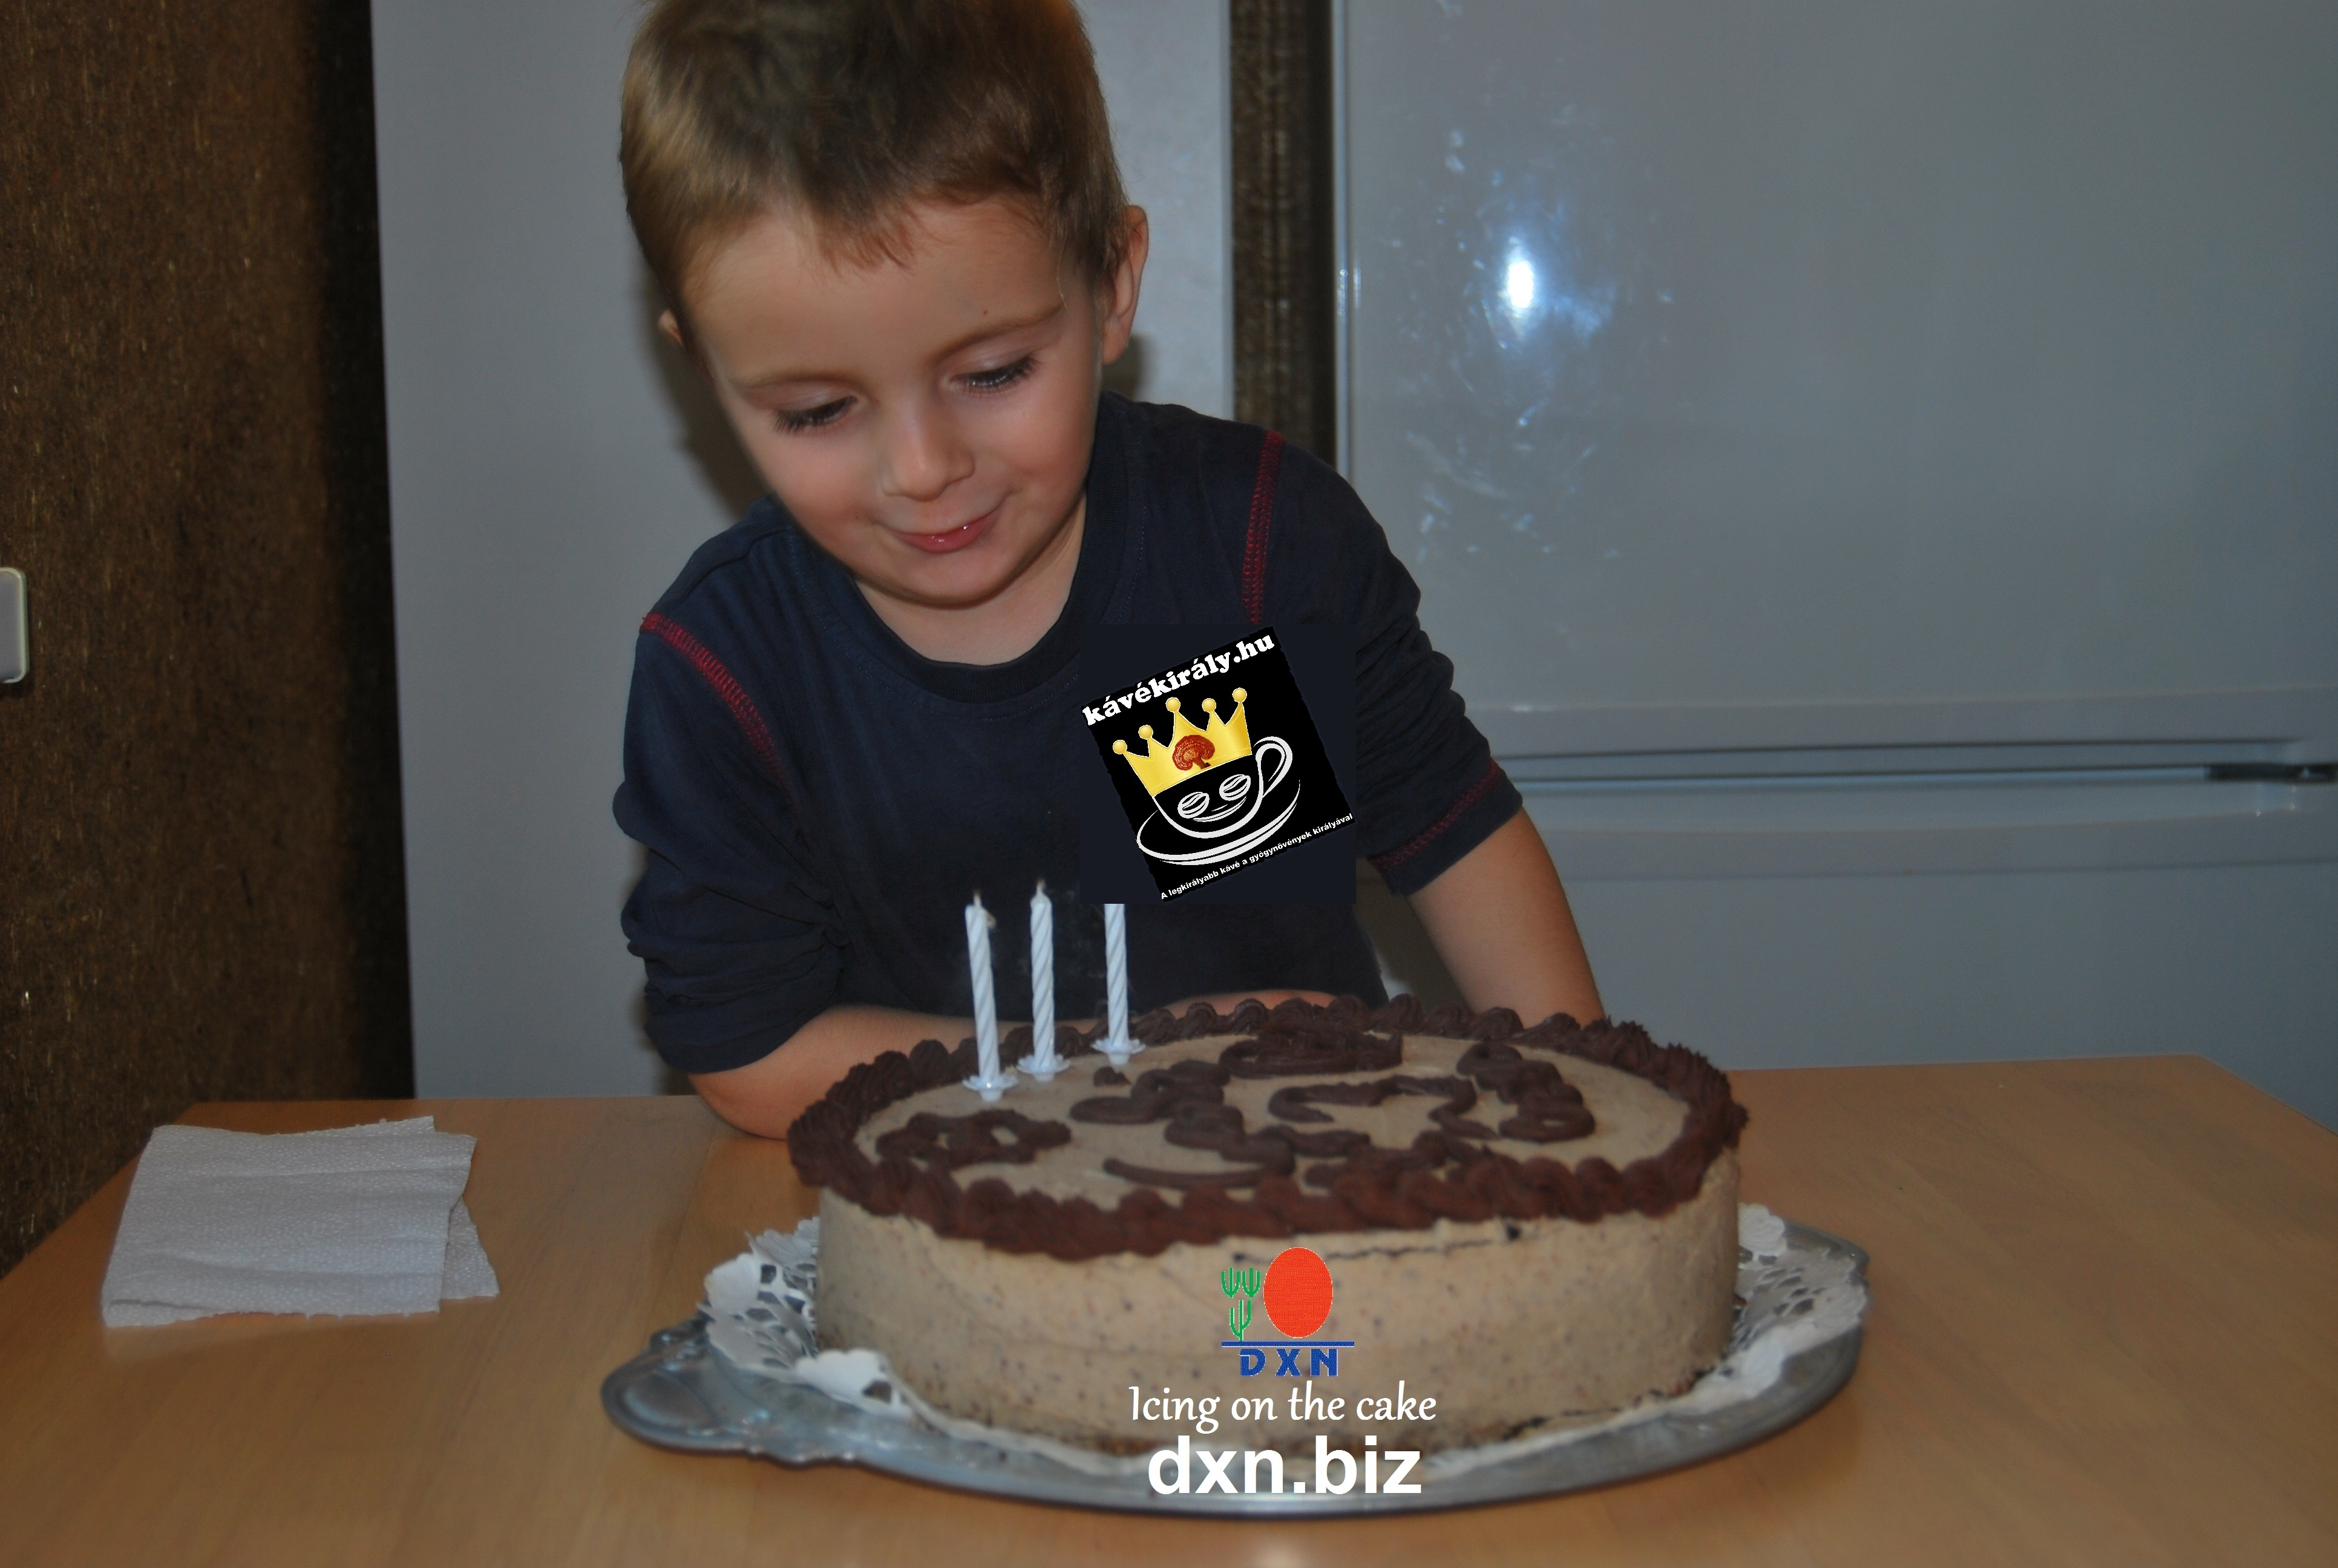 My nephew with his DXN birthday icing on the cake :)